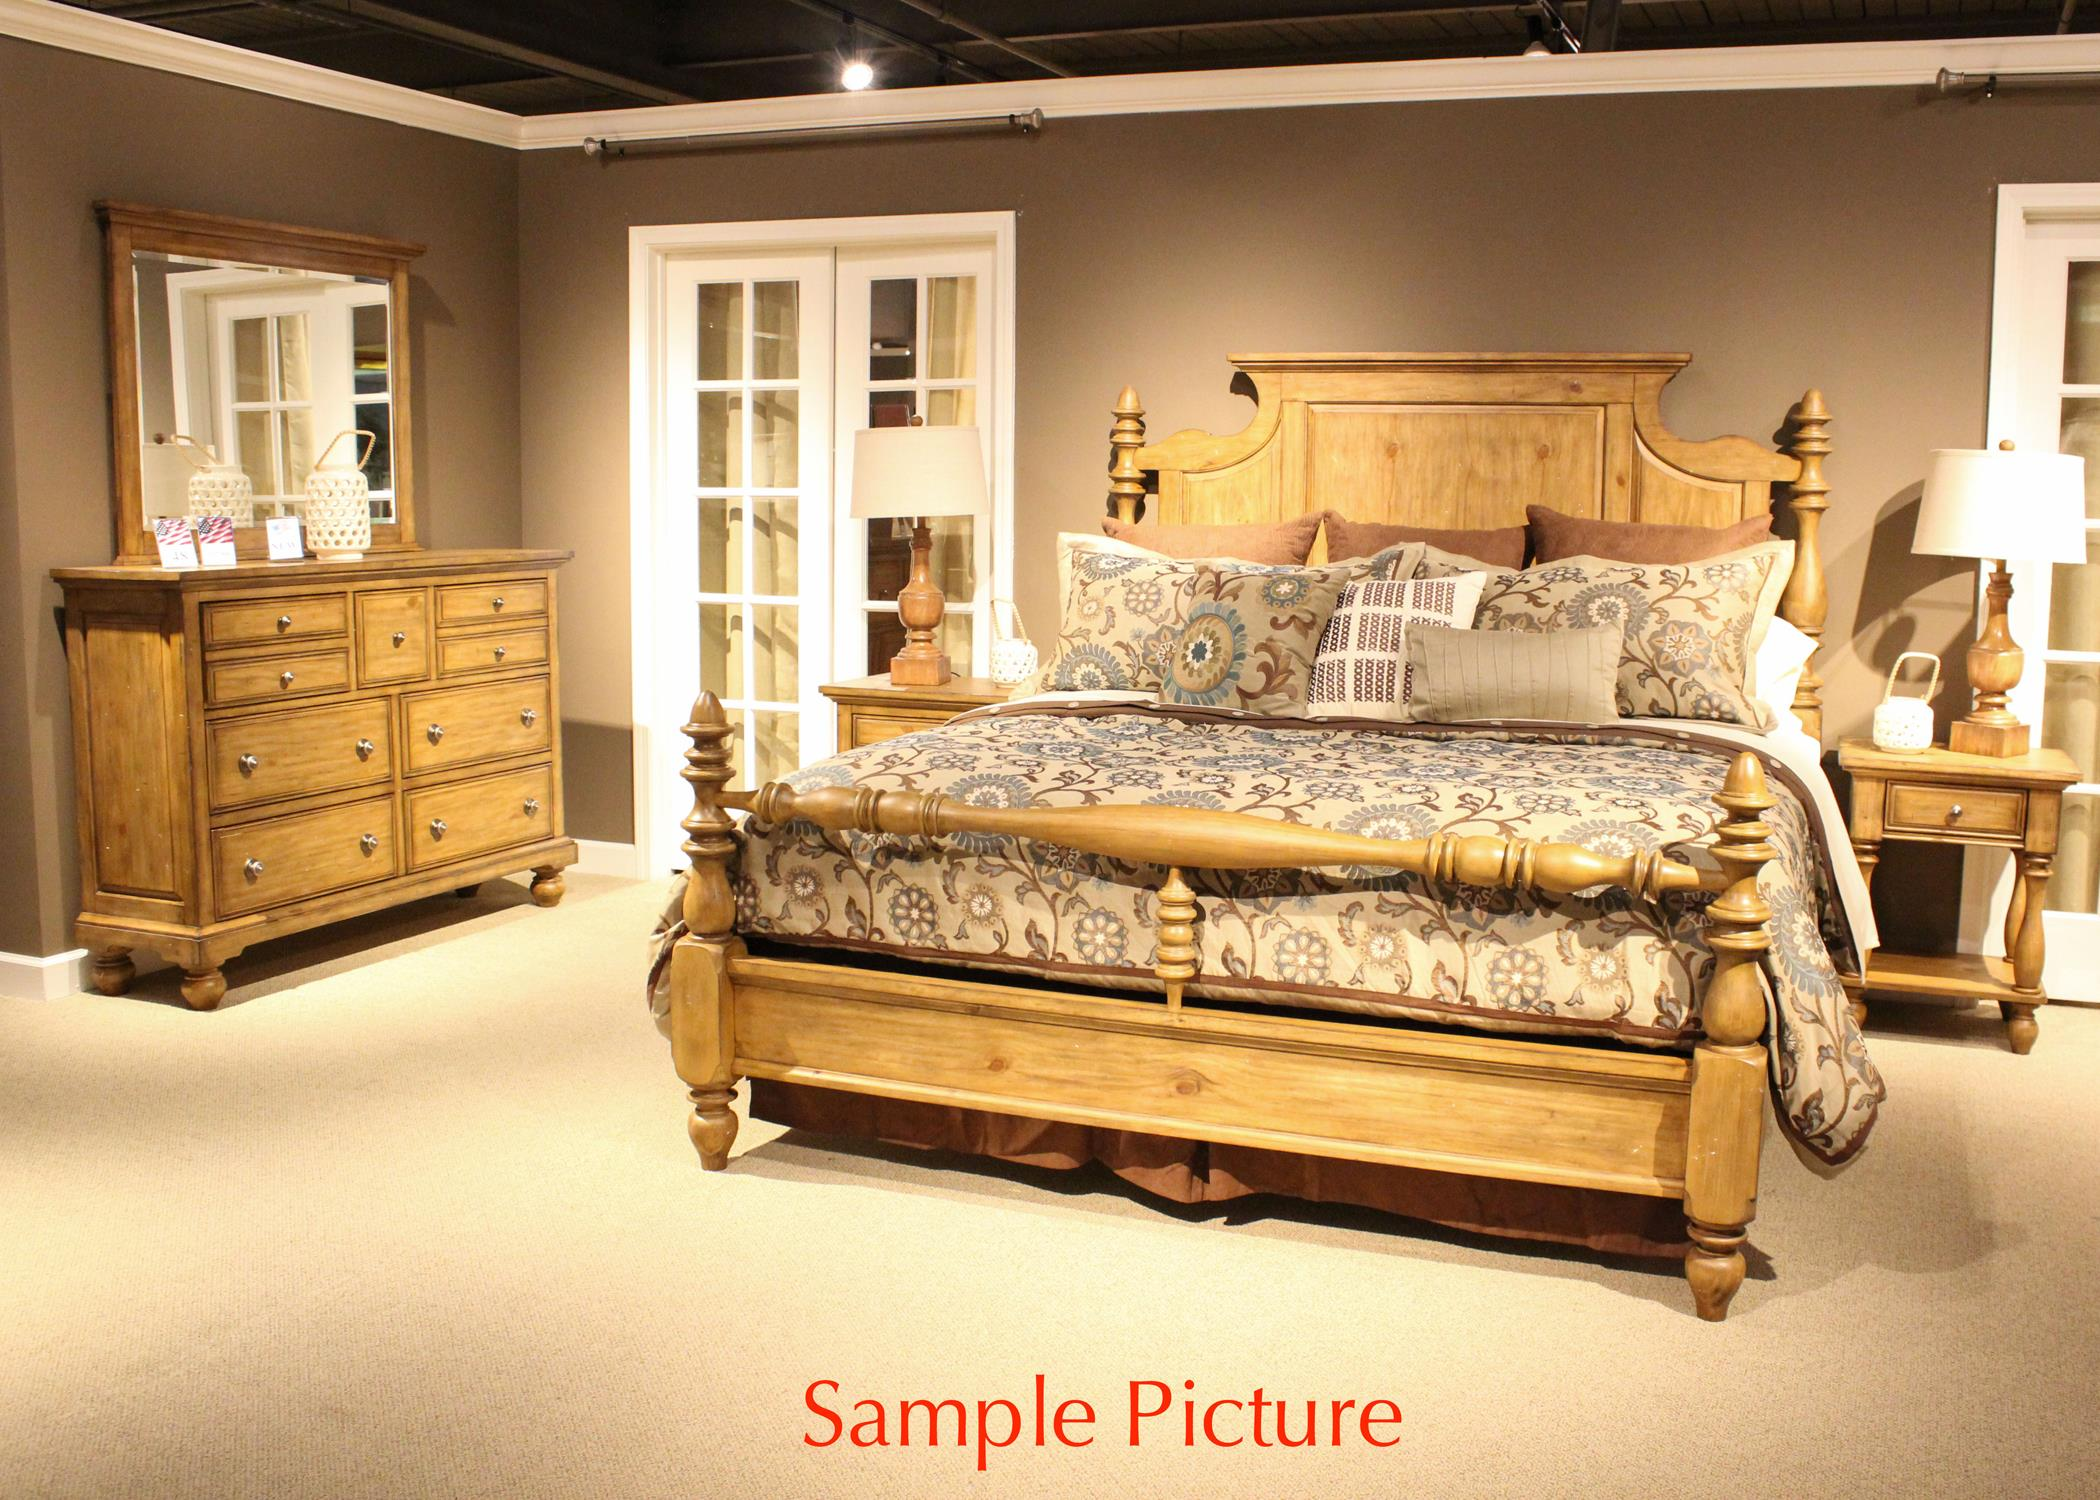 Liberty Furniture High Country King Bedroom Group - Item Number: 797-BR K Bedroom Group 1